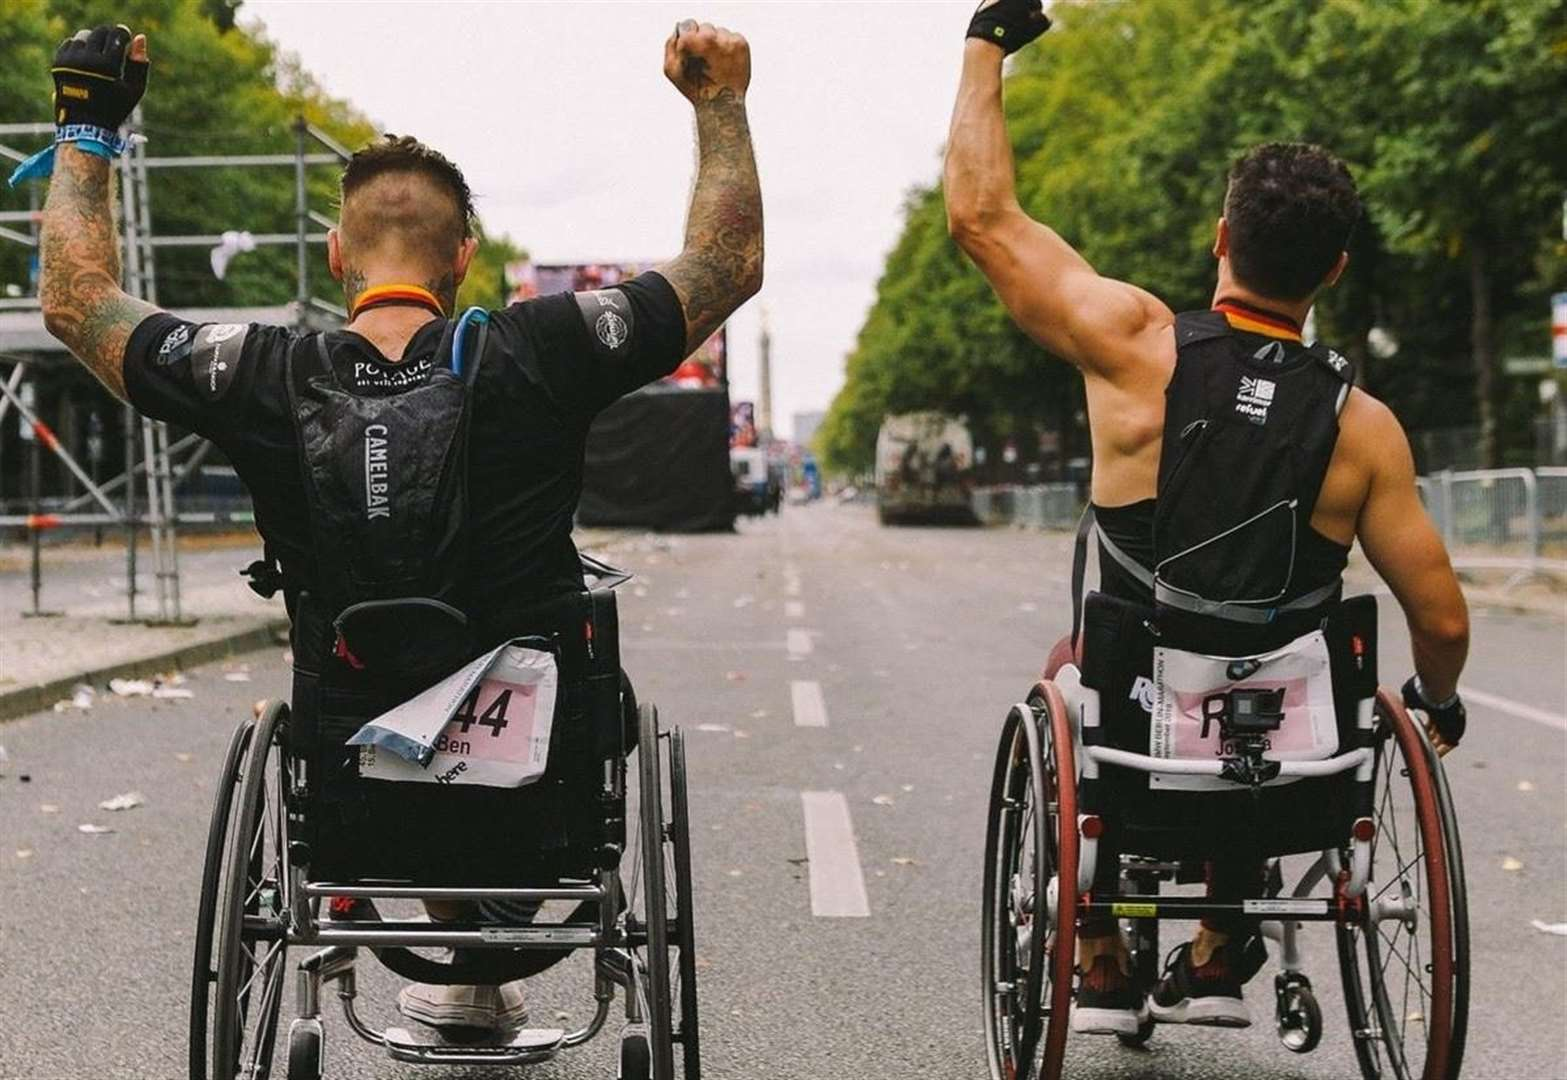 Reality star to attempt JoGLE challenge in a wheelchair